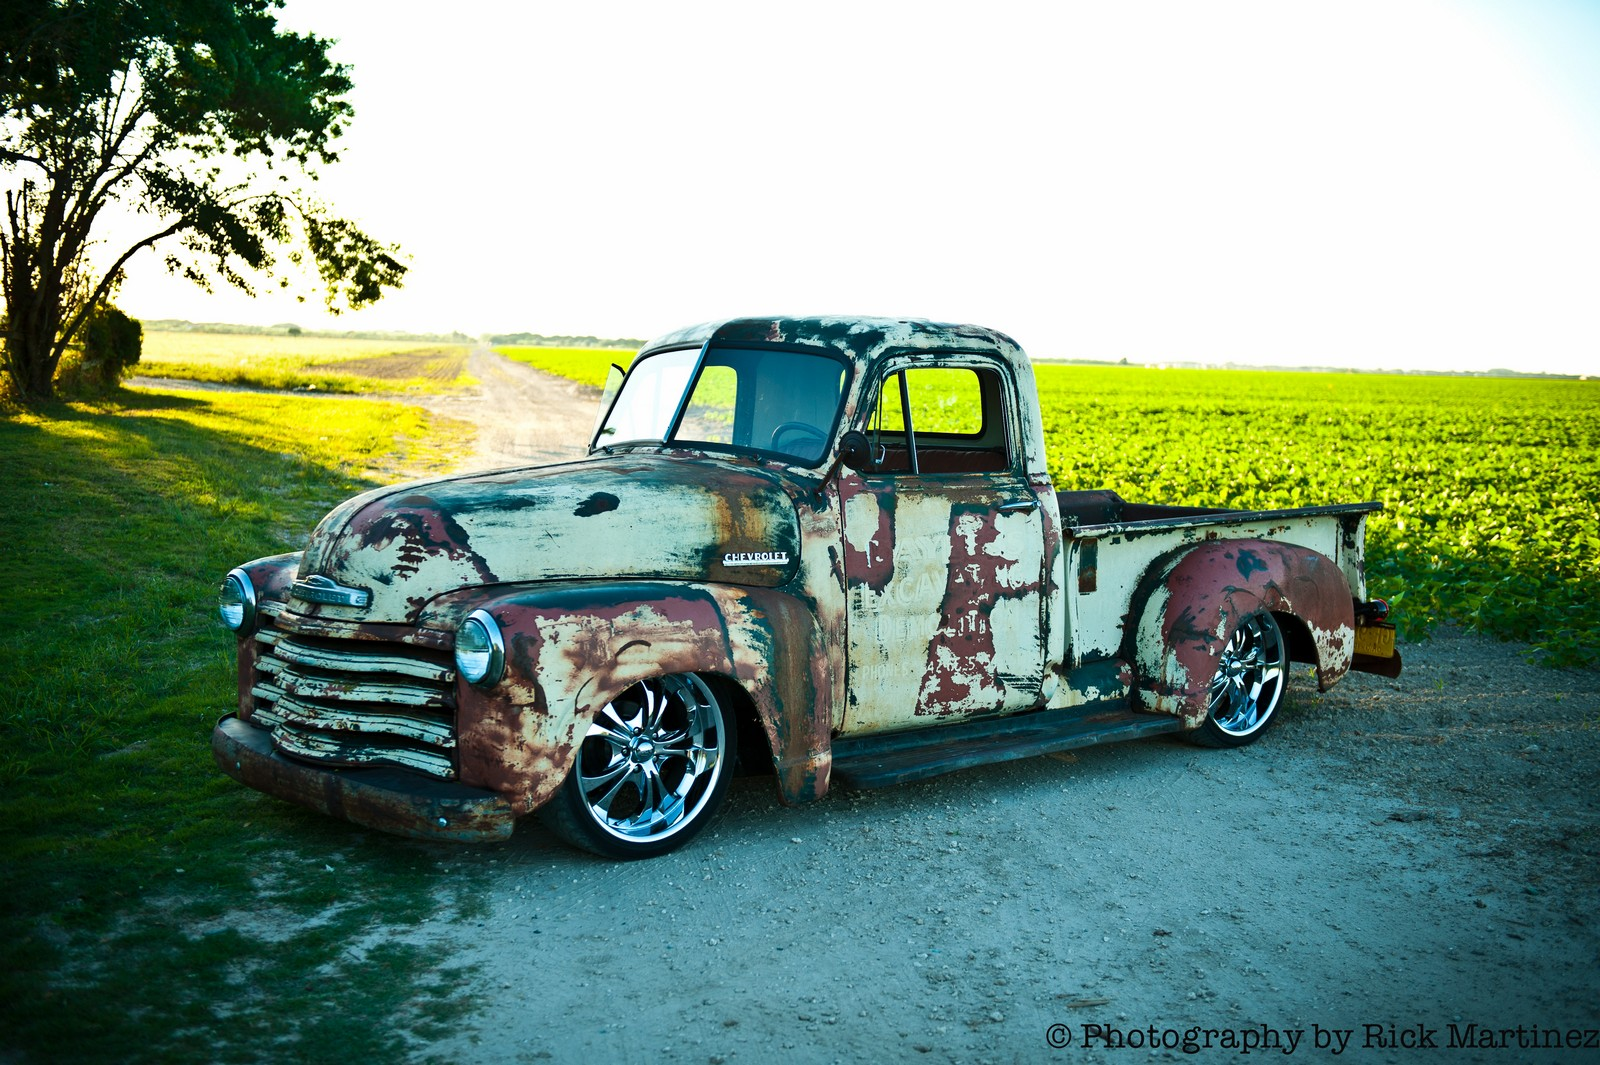 hight resolution of wiring diagram for ford truck images 51 chevy 3100 wiring diagram 51 get image about wiring